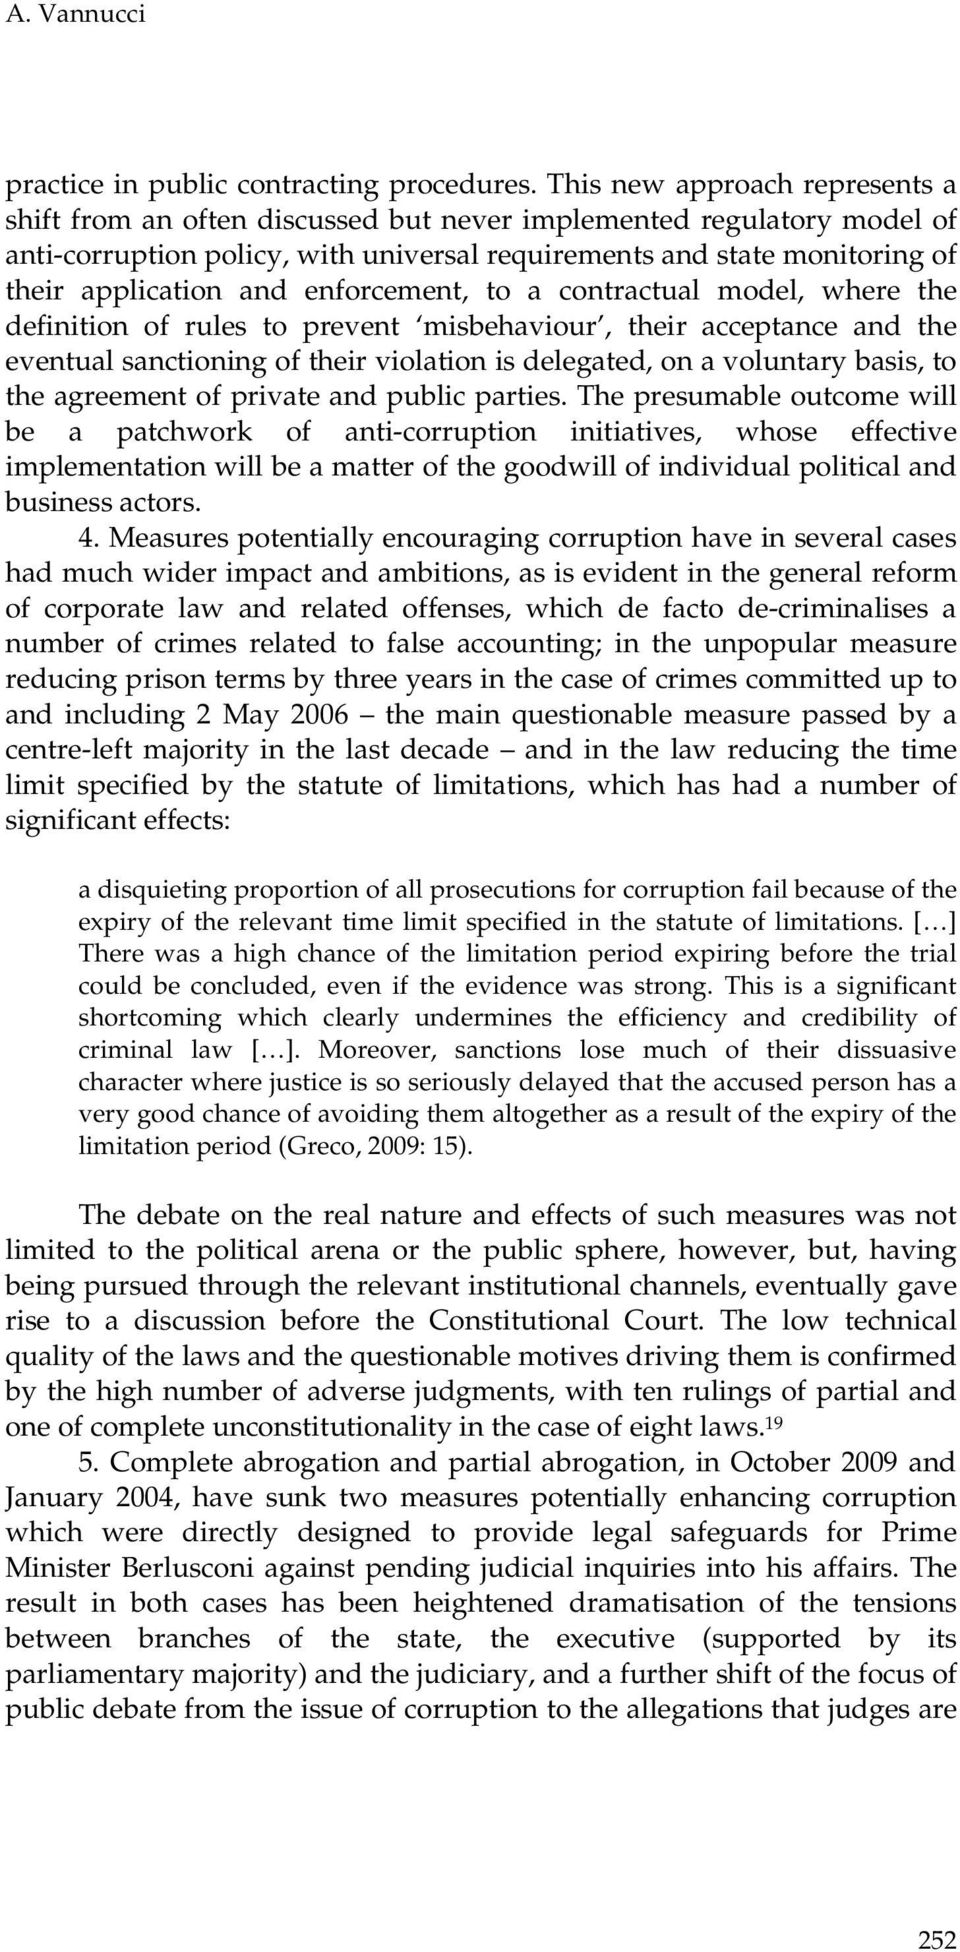 and enforcement, to a contractual model, where the definition of rules to prevent misbehaviour, their acceptance and the eventual sanctioning of their violation is delegated, on a voluntary basis, to